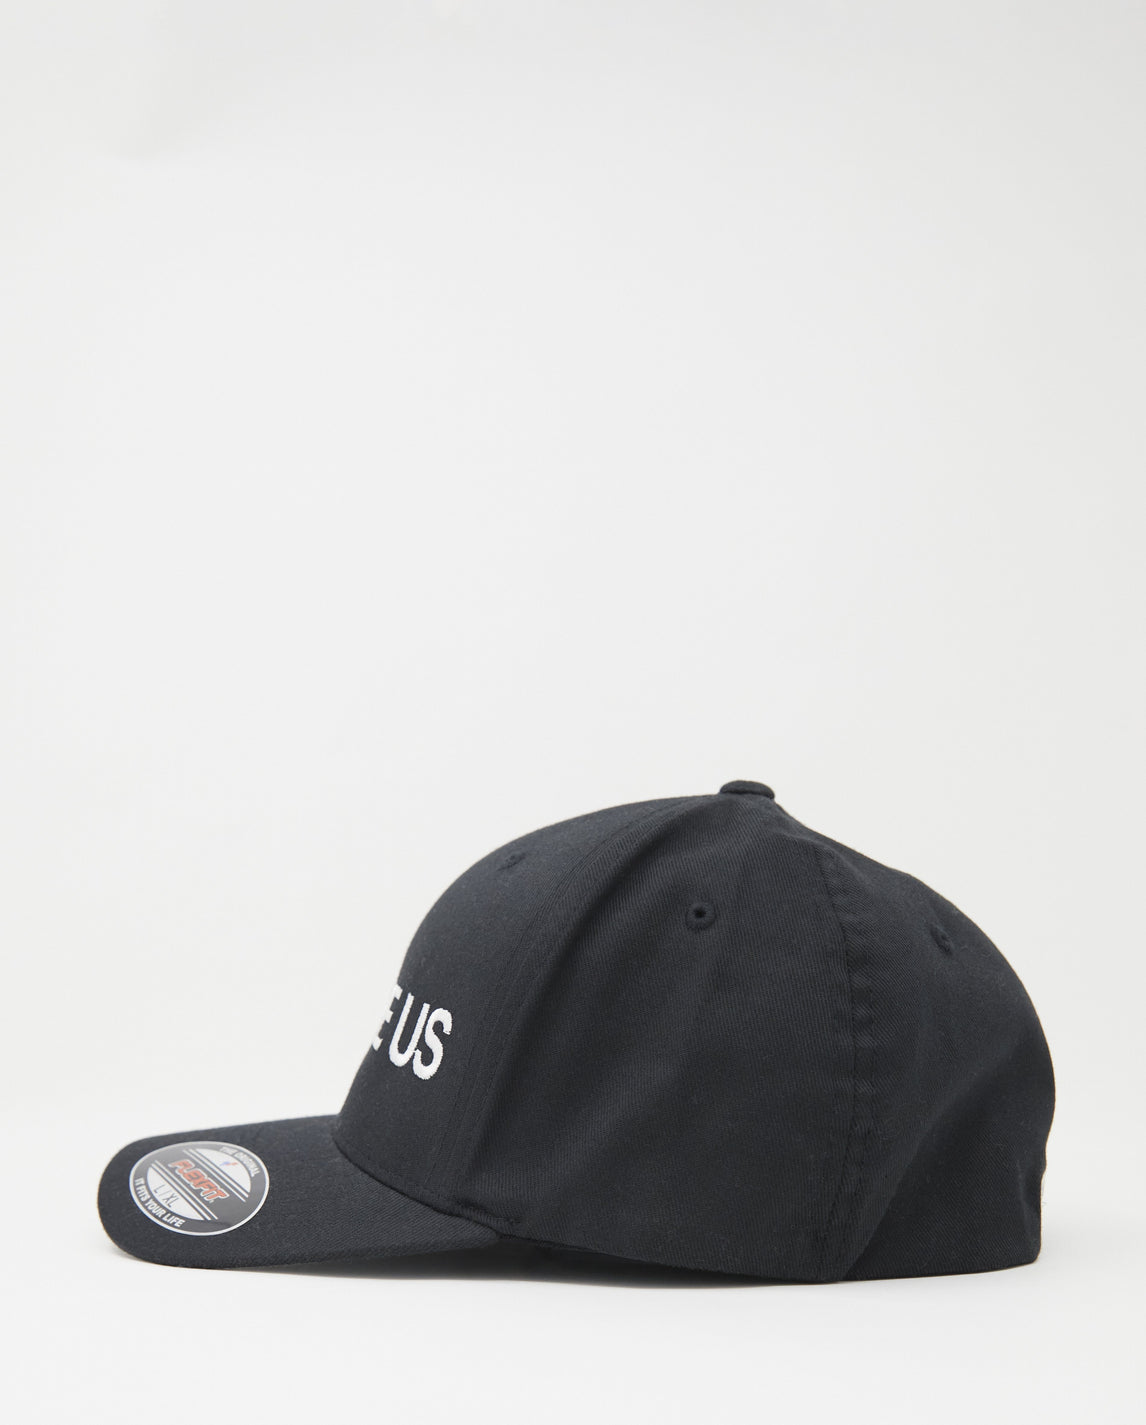 Now Here Us Cap - Black/White UNISEX SAMIZDAT